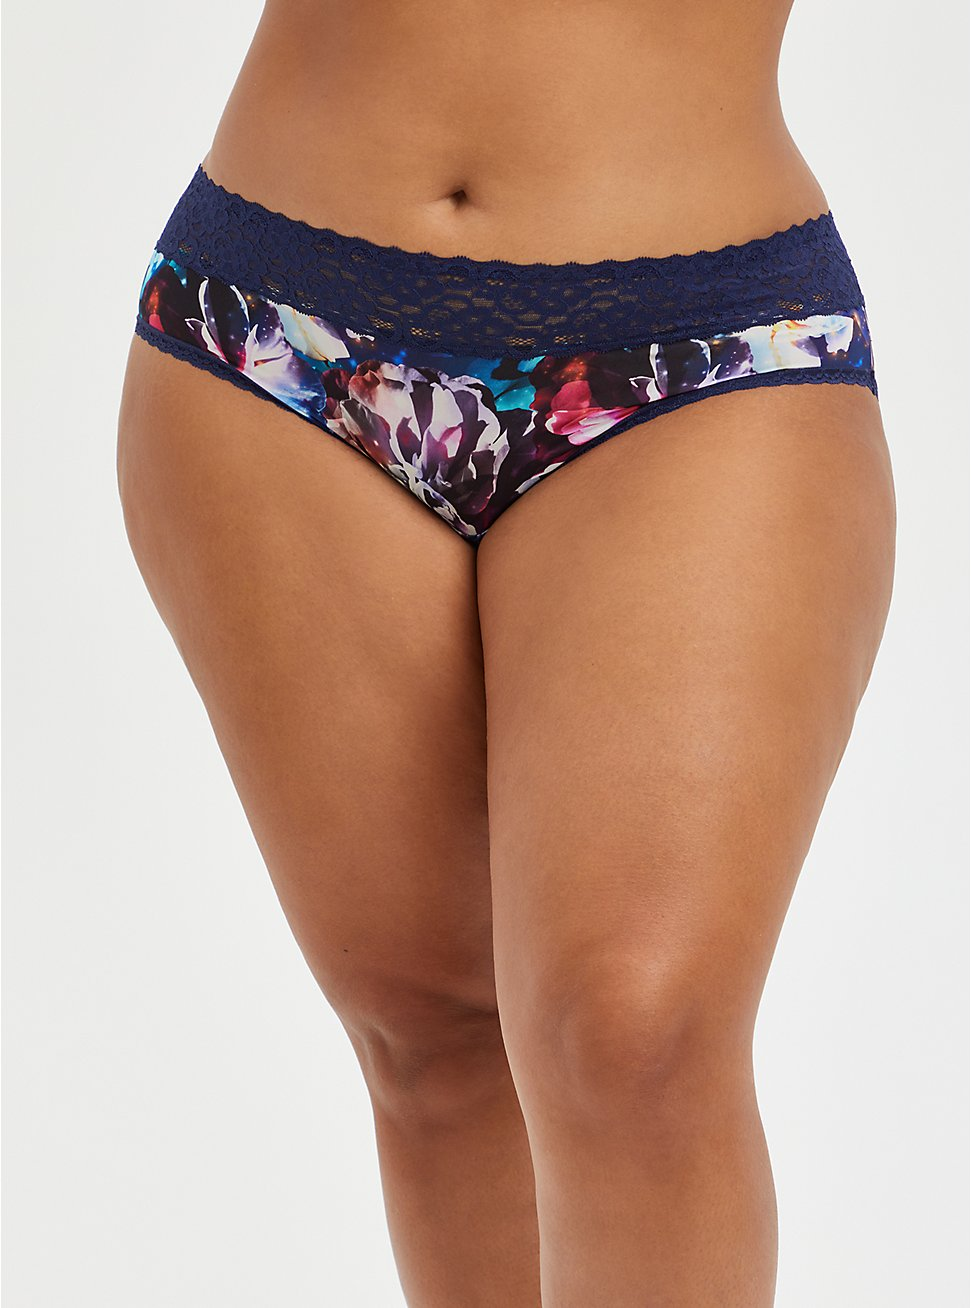 Second Skin Cheeky Panty - Lace Galaxy Blue, FLORAL IN GALAXY, hi-res